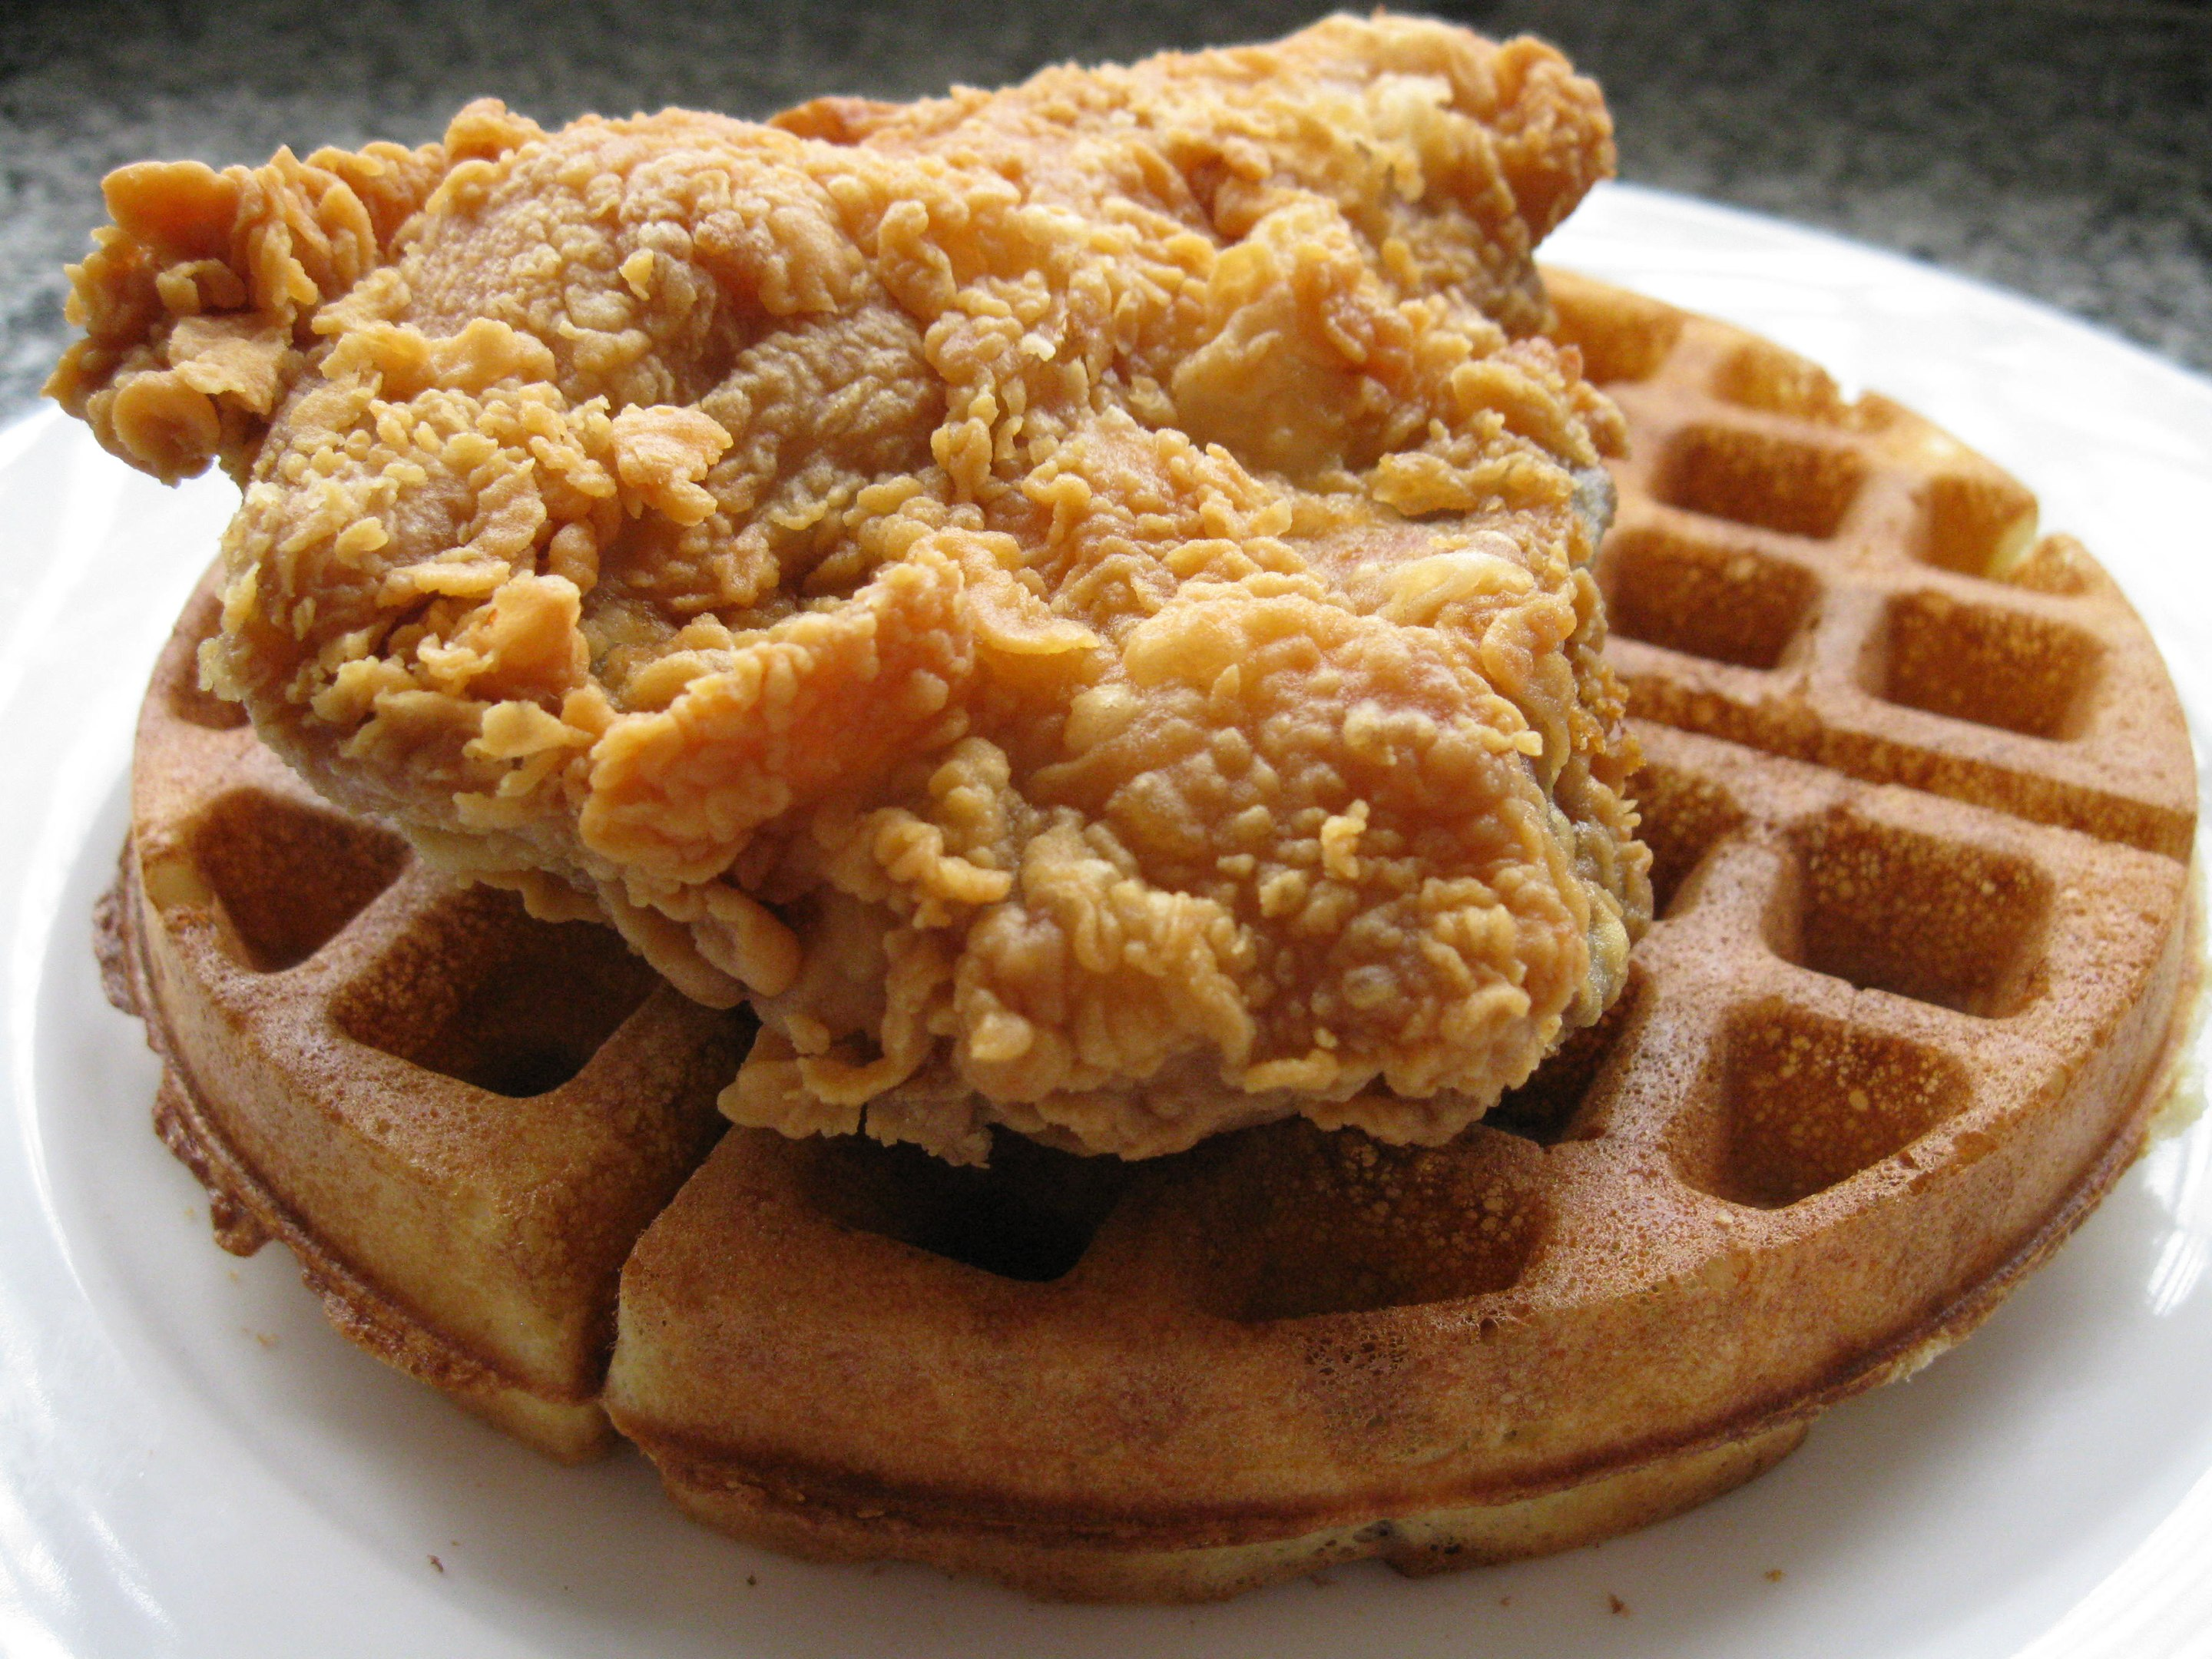 ... tasty dish history of chicken and waffles chicken and waffles at